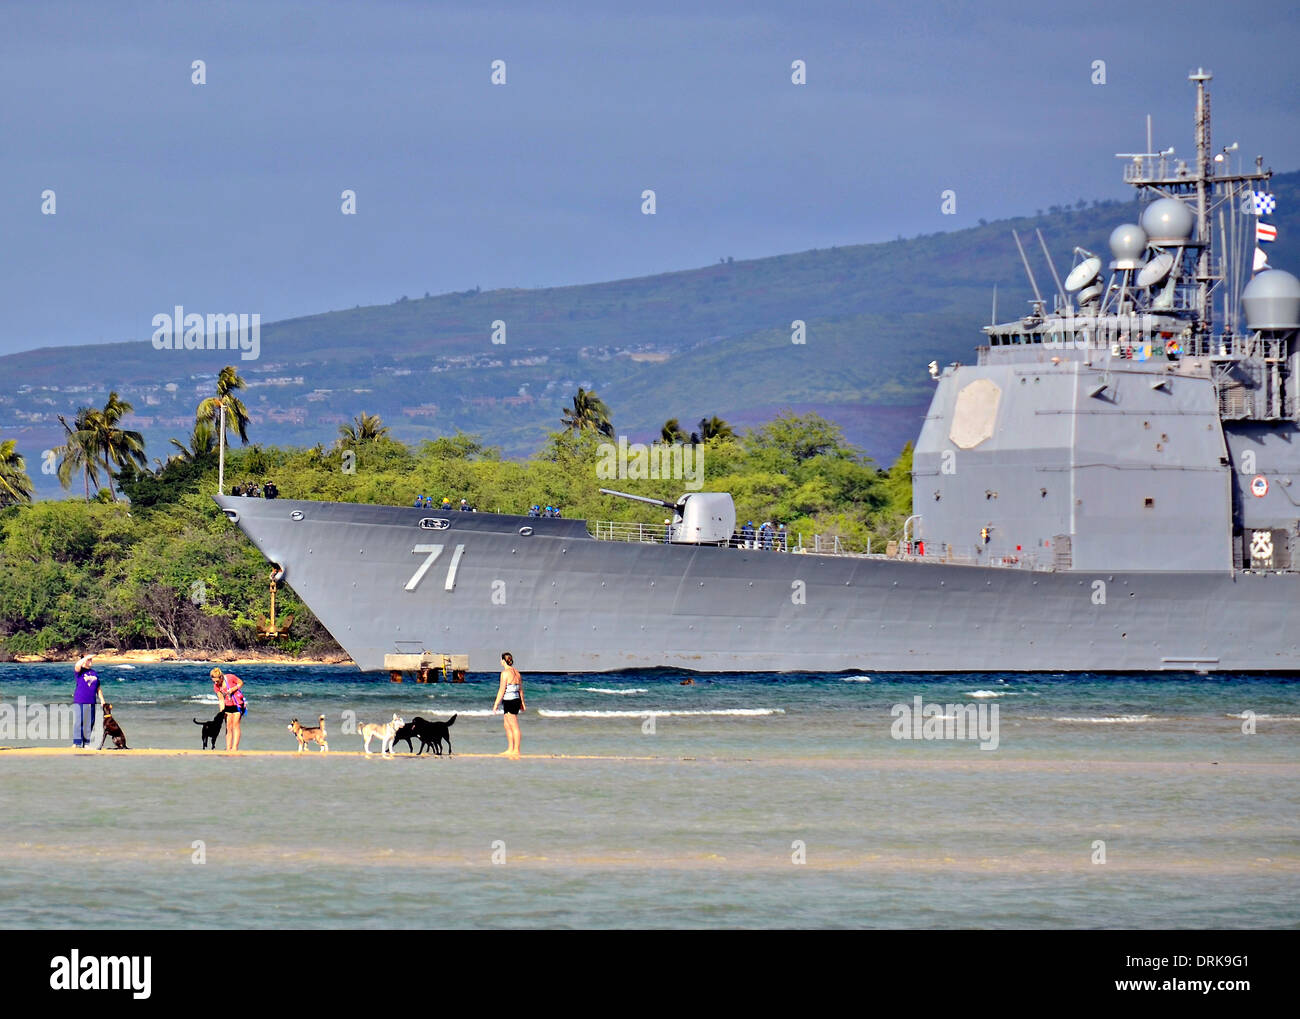 US Navy guided missile cruiser USS Cape St George transits the waters of Pearl Harbor past bathers January 25, 2014 in Honolulu, HI. - Stock Image